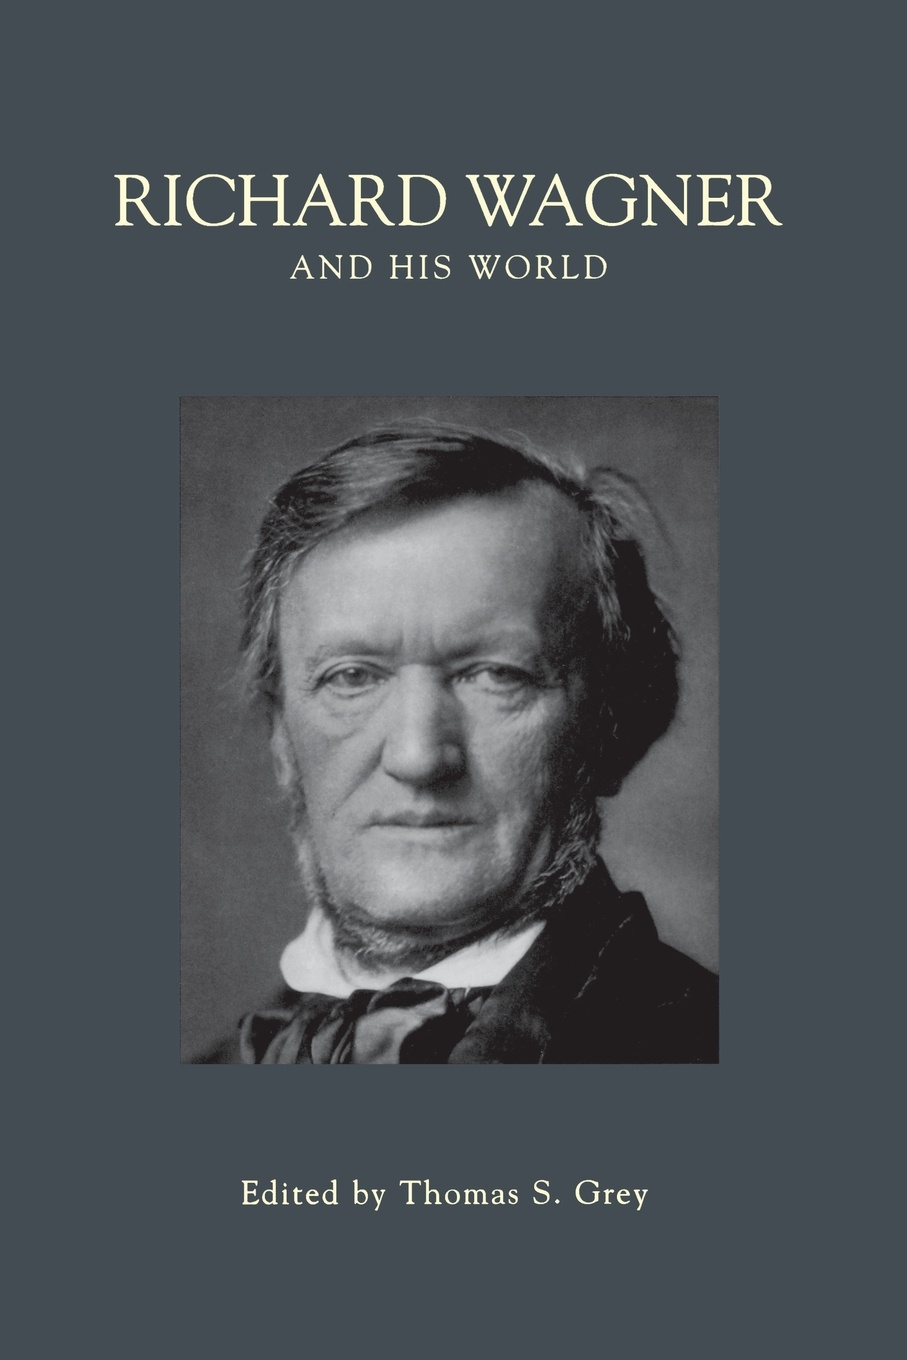 Richard Wagner and His World heinrich wilsing richard wagner the mastersingers of nurnberg a guide to the music and the drama